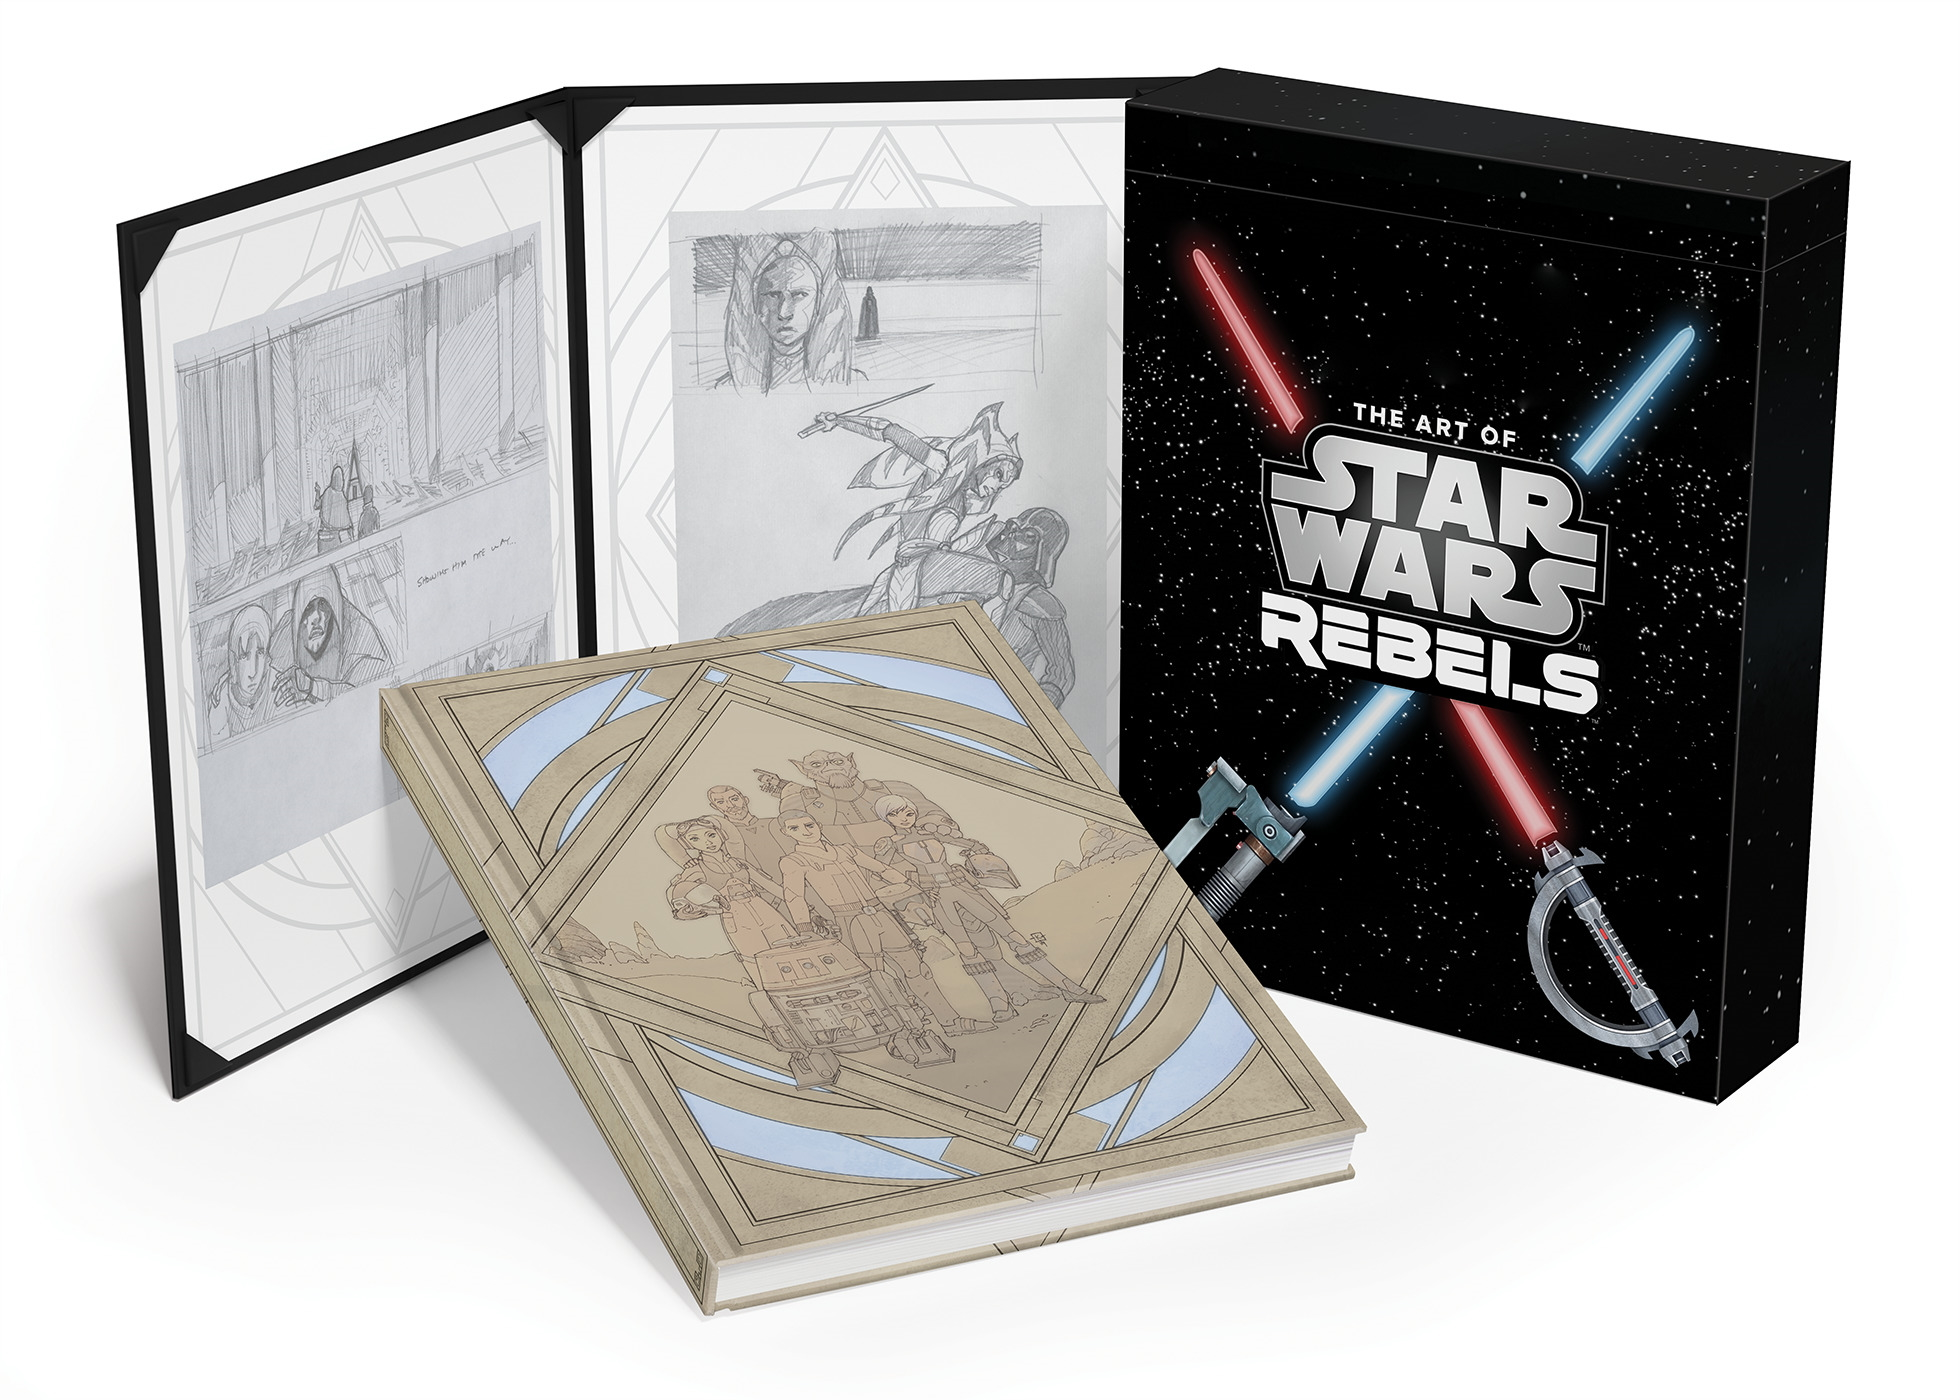 The Art of Star Wars Rebels - Limited Edition (17.03.2020)